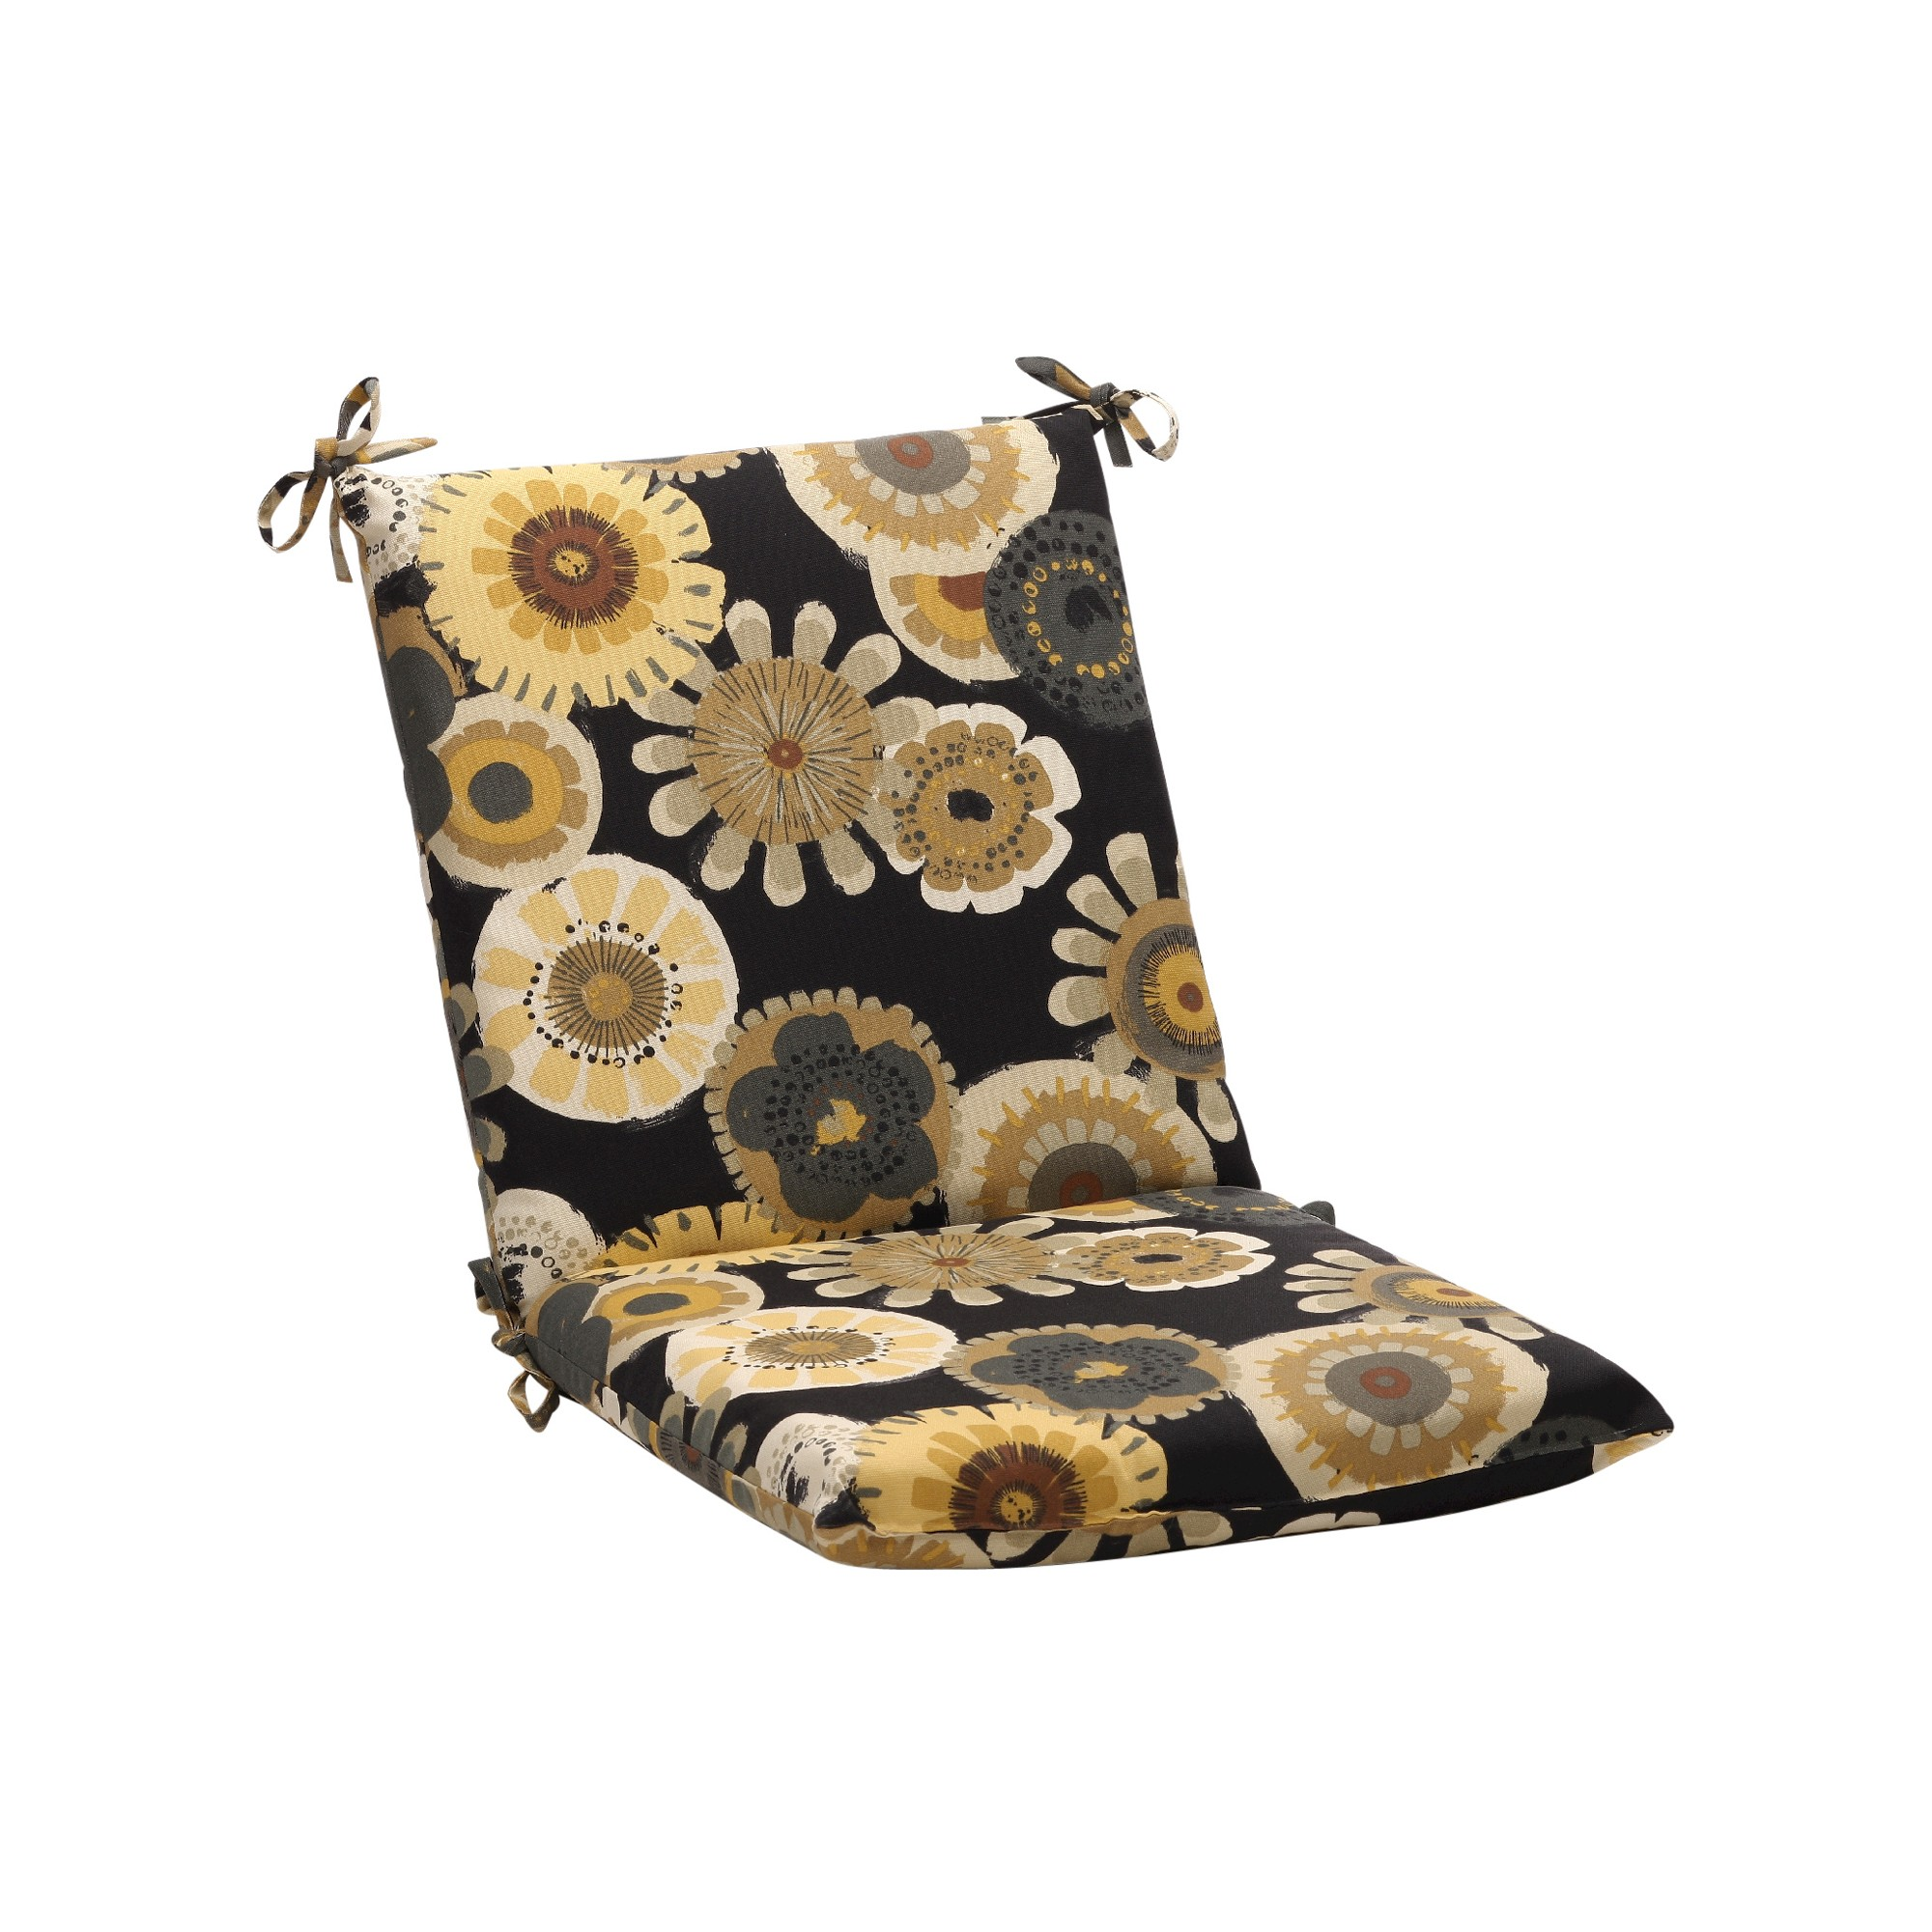 Outdoor Chair Cushion - Black/Yellow Floral